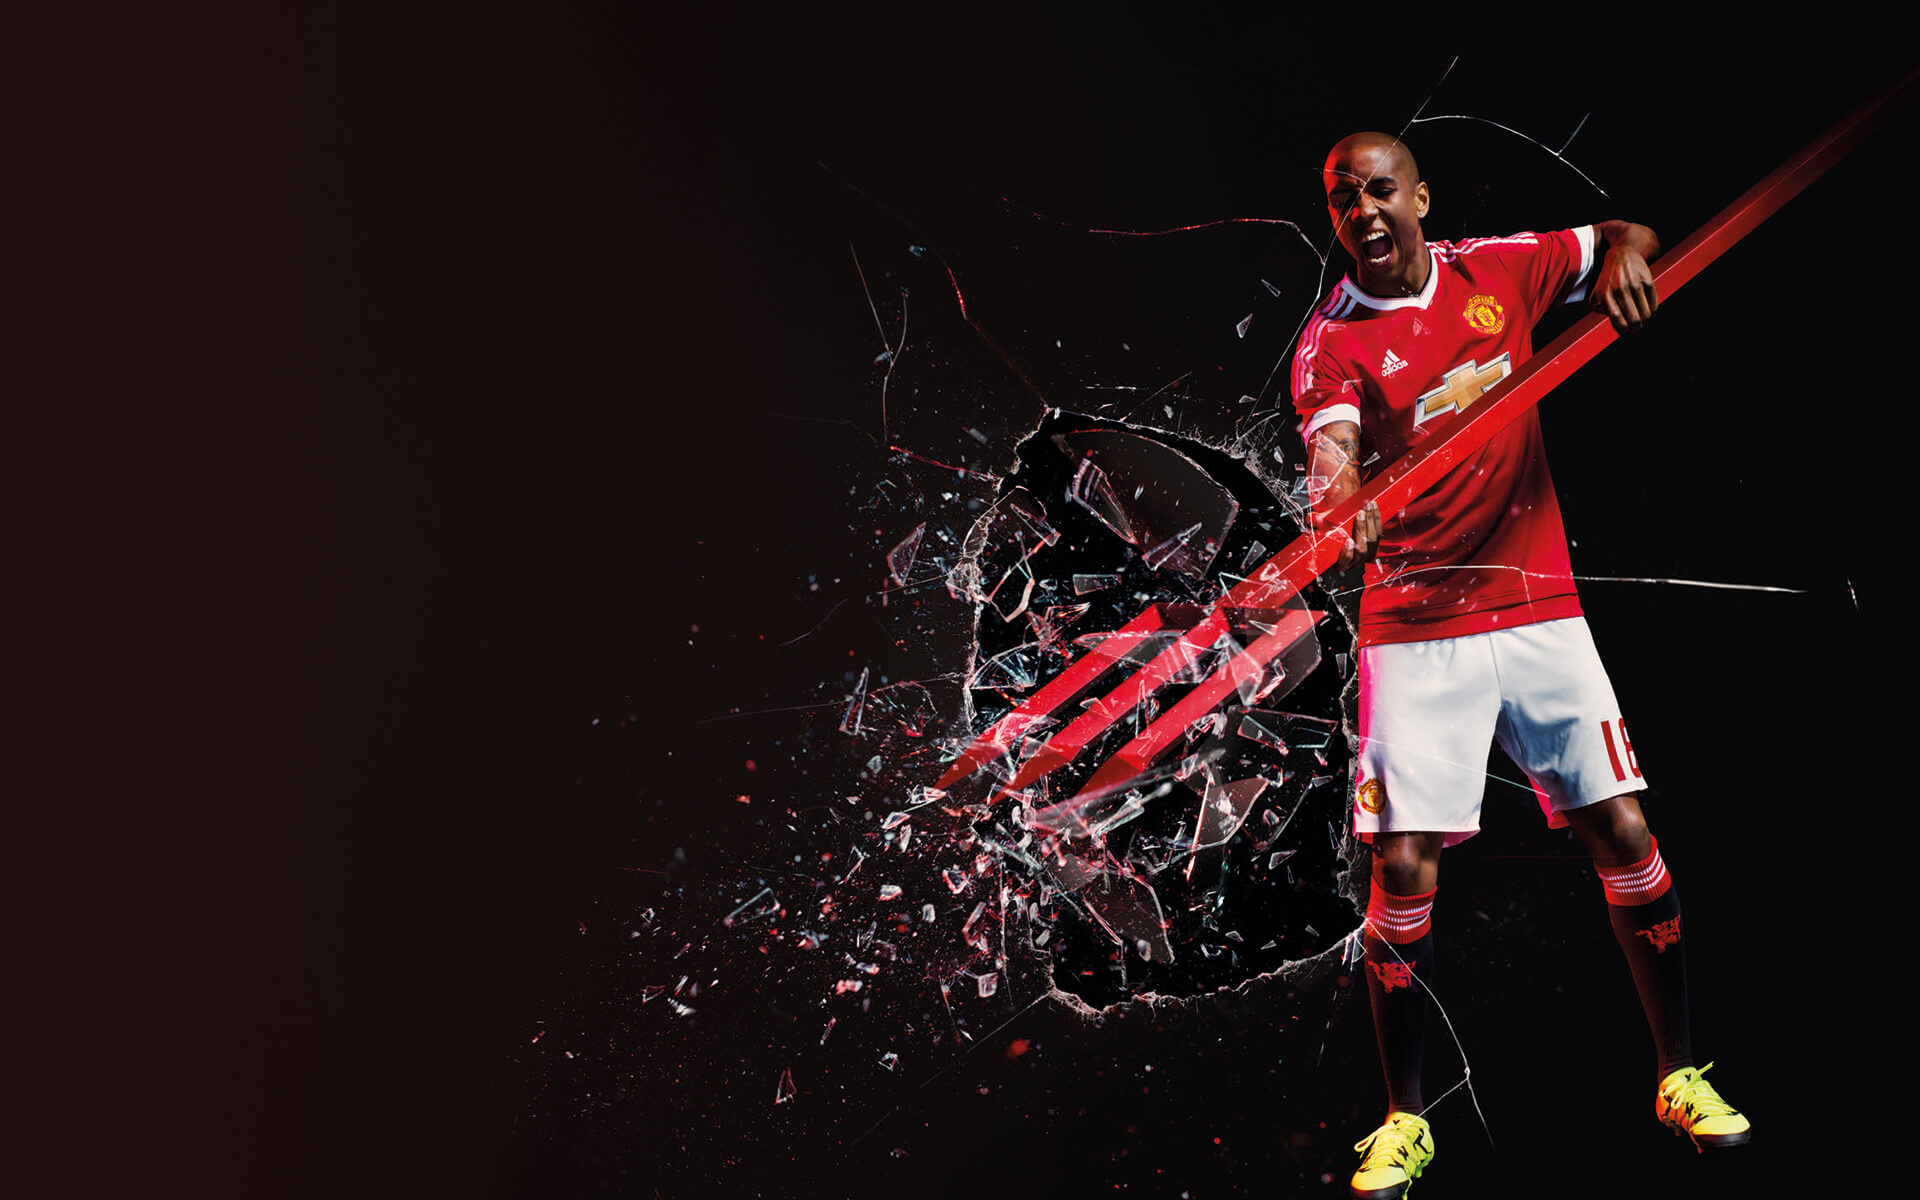 Ashley Young 2015 2016 Manchester United Adidas Home Kit Wallpapers 1920x1200